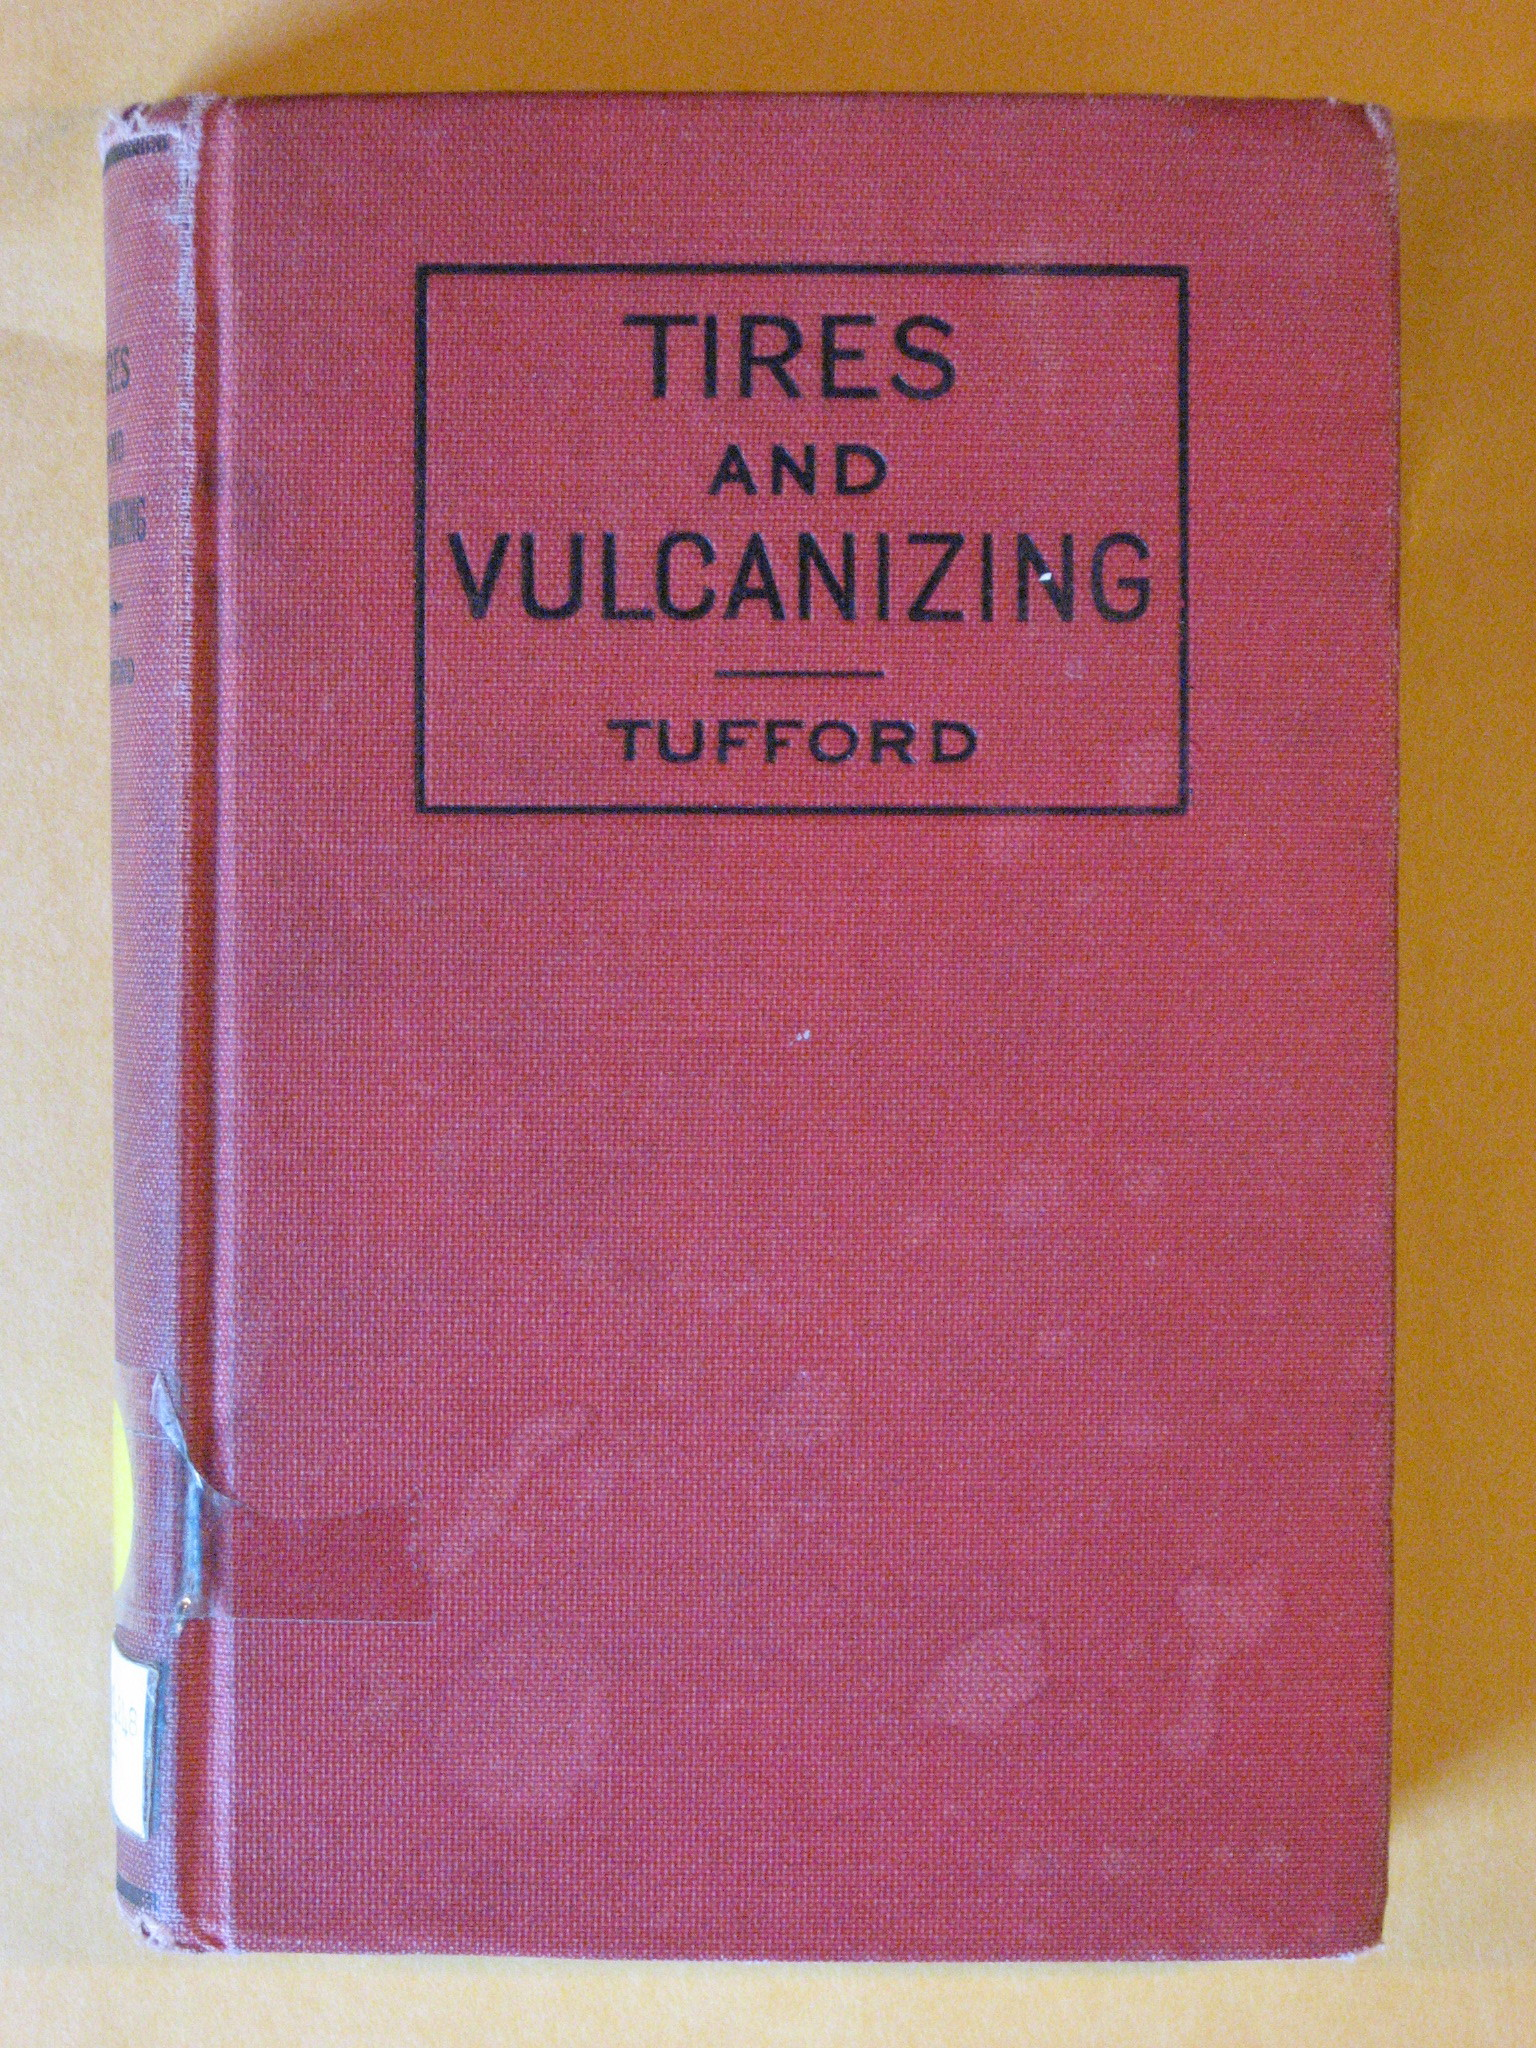 Tires and Vulcanizing: Including all necessary information and instructions on rubber, compounds, cotton and repair methods. The construction of pneumatic tires together with their use, injuries and abuse., Tufford, Henry H.